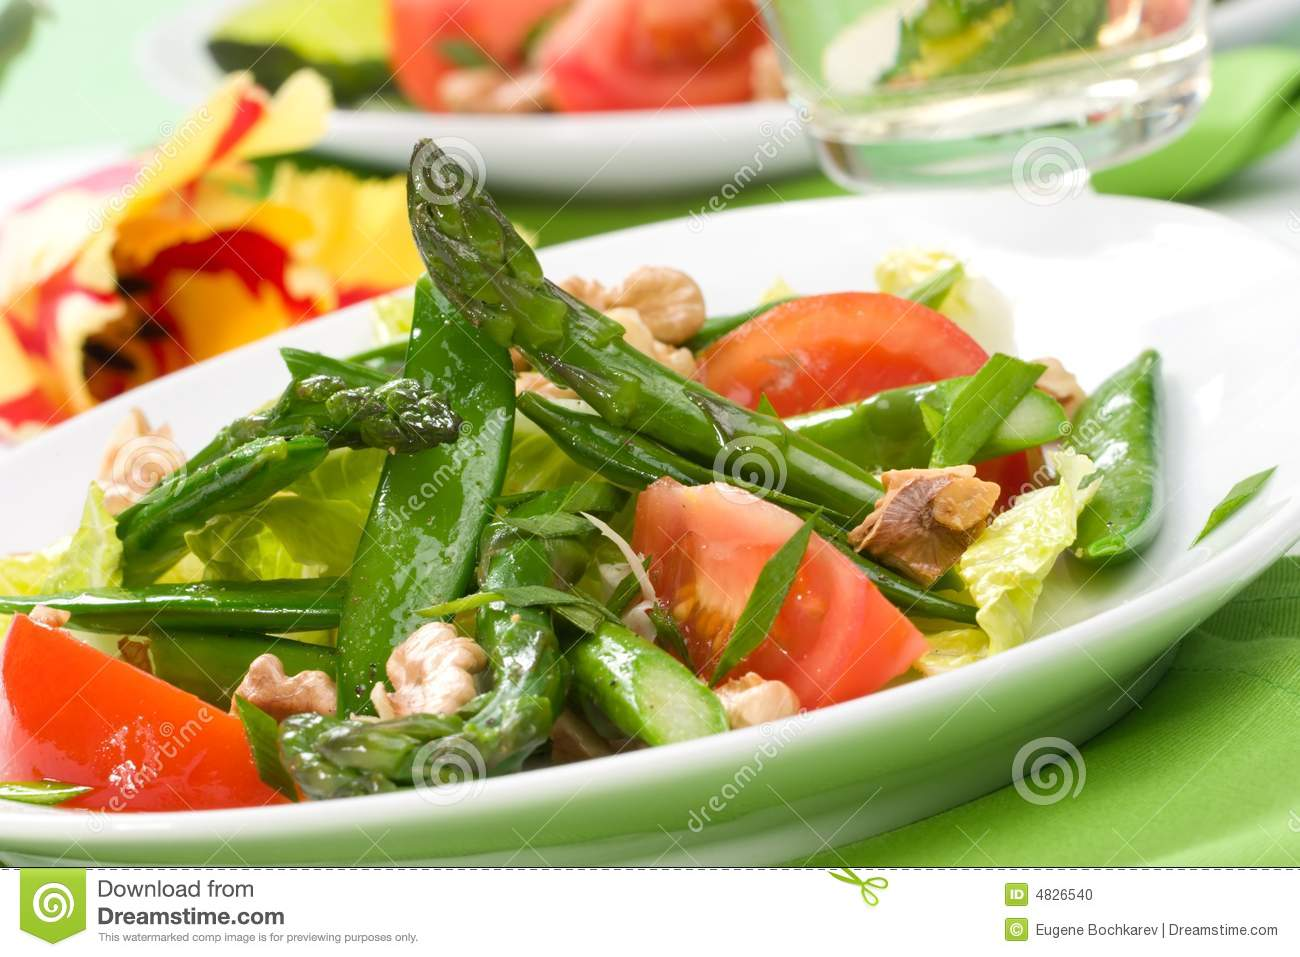 Asparagus Salad Stock Photo - Image: 4826540